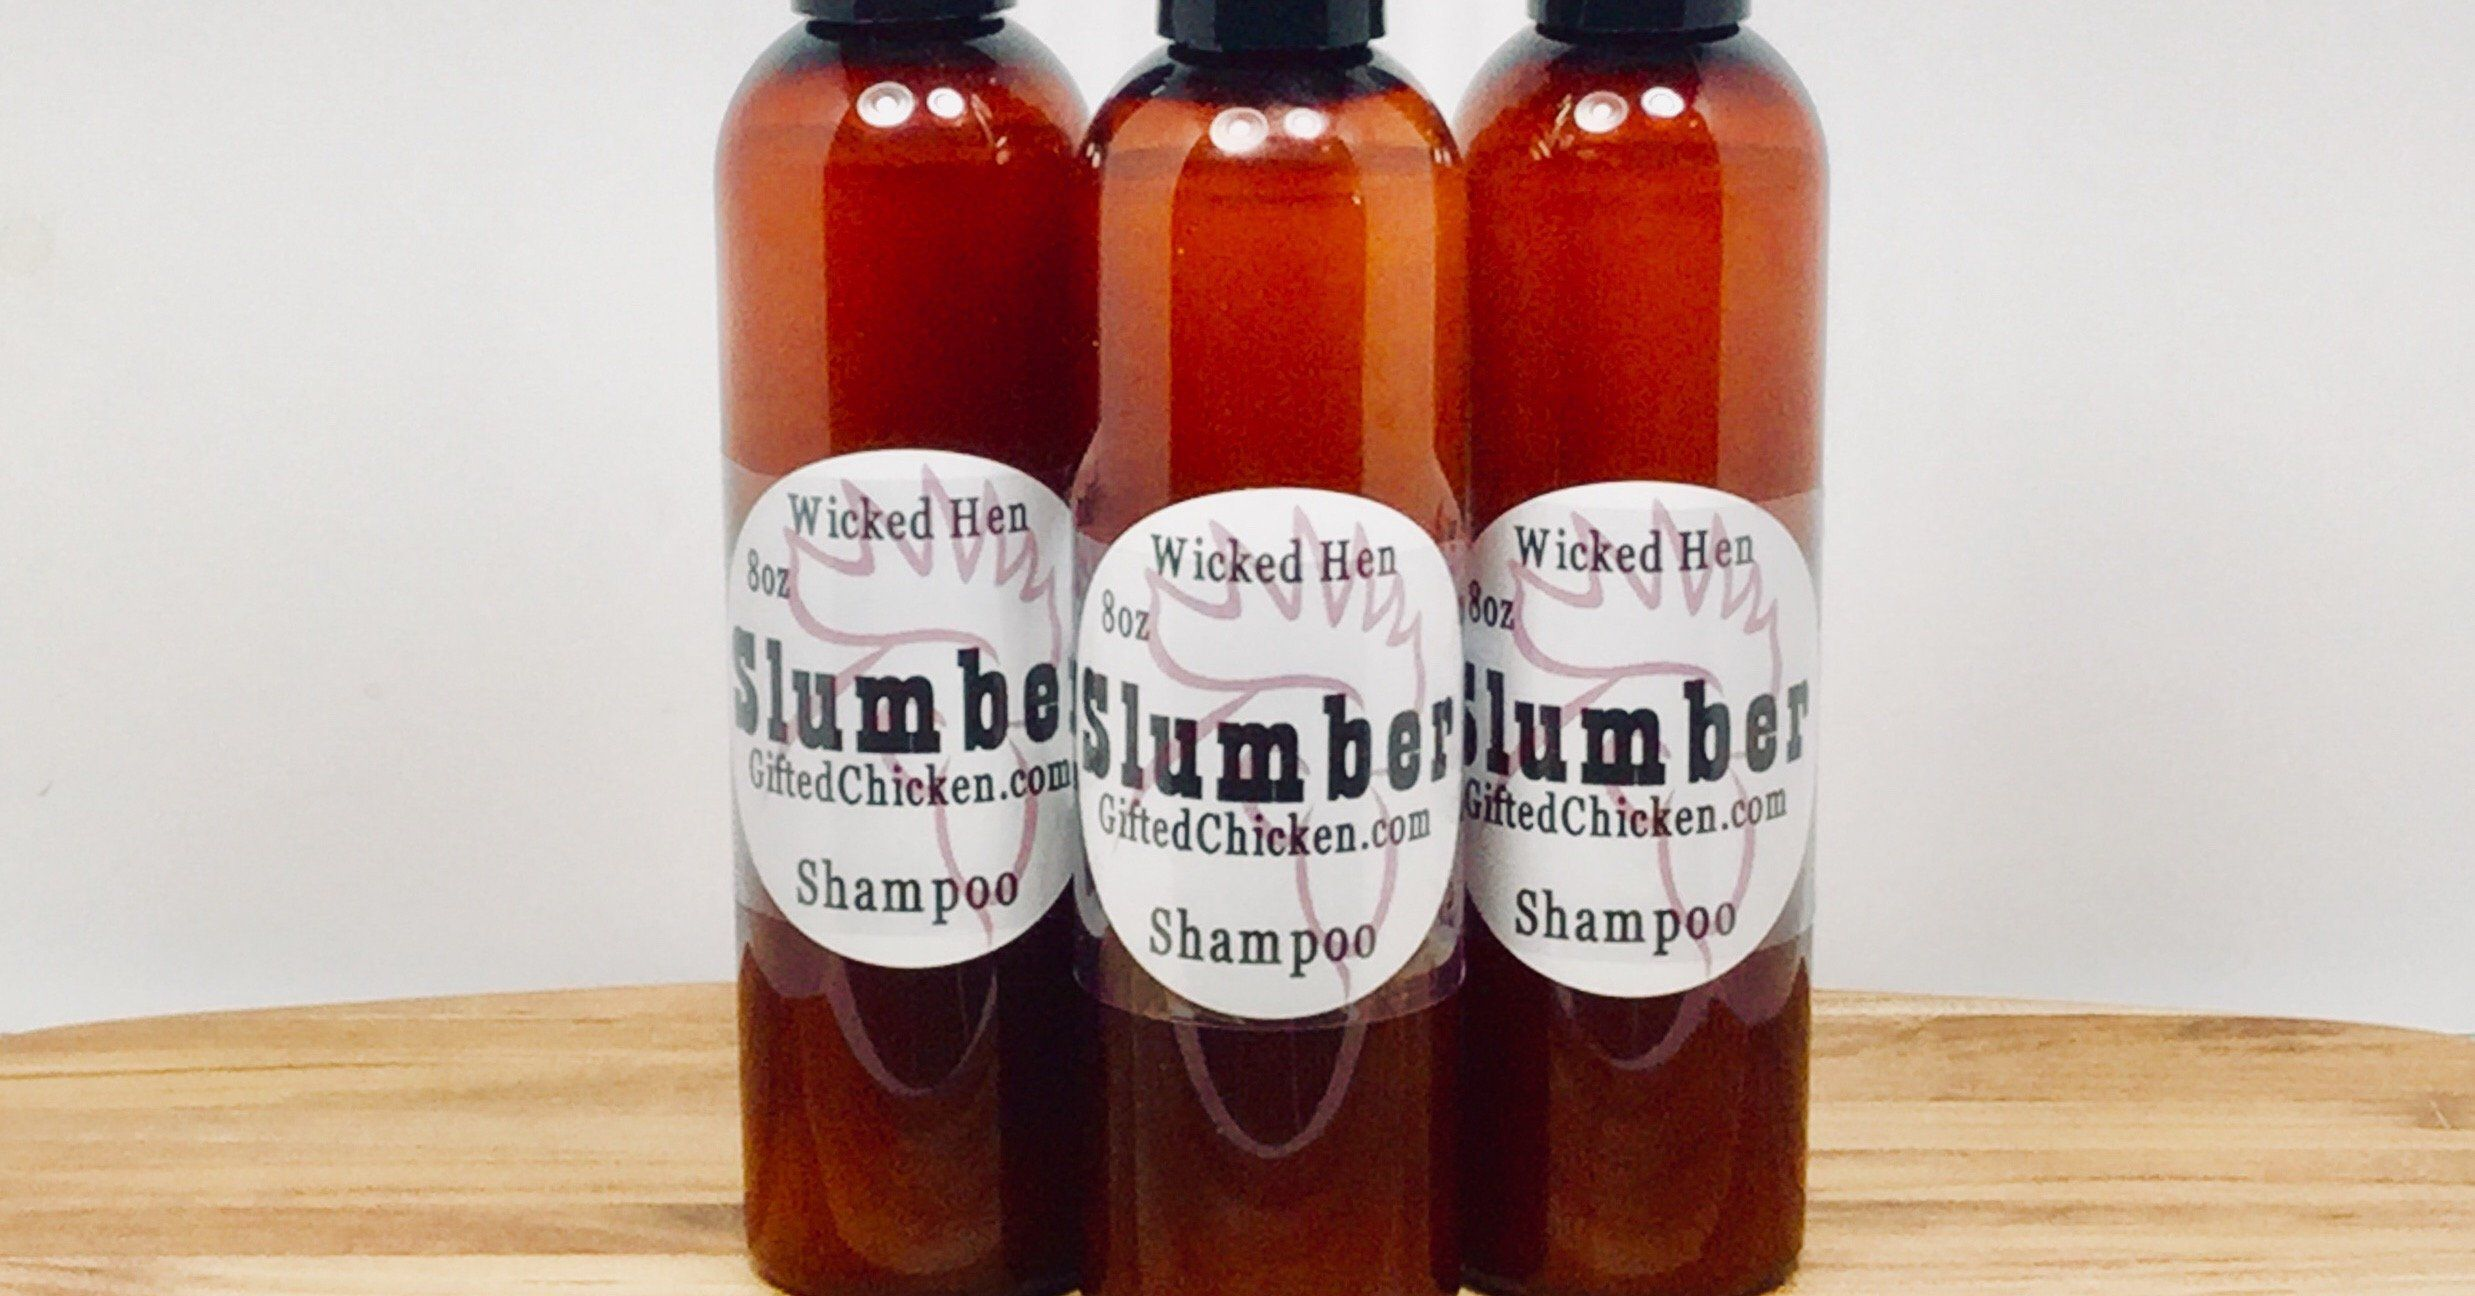 Shampoo Slumber 14 99 Free Shipping Giftedchicken Com Beer Soap Shampoo Wine Bottle